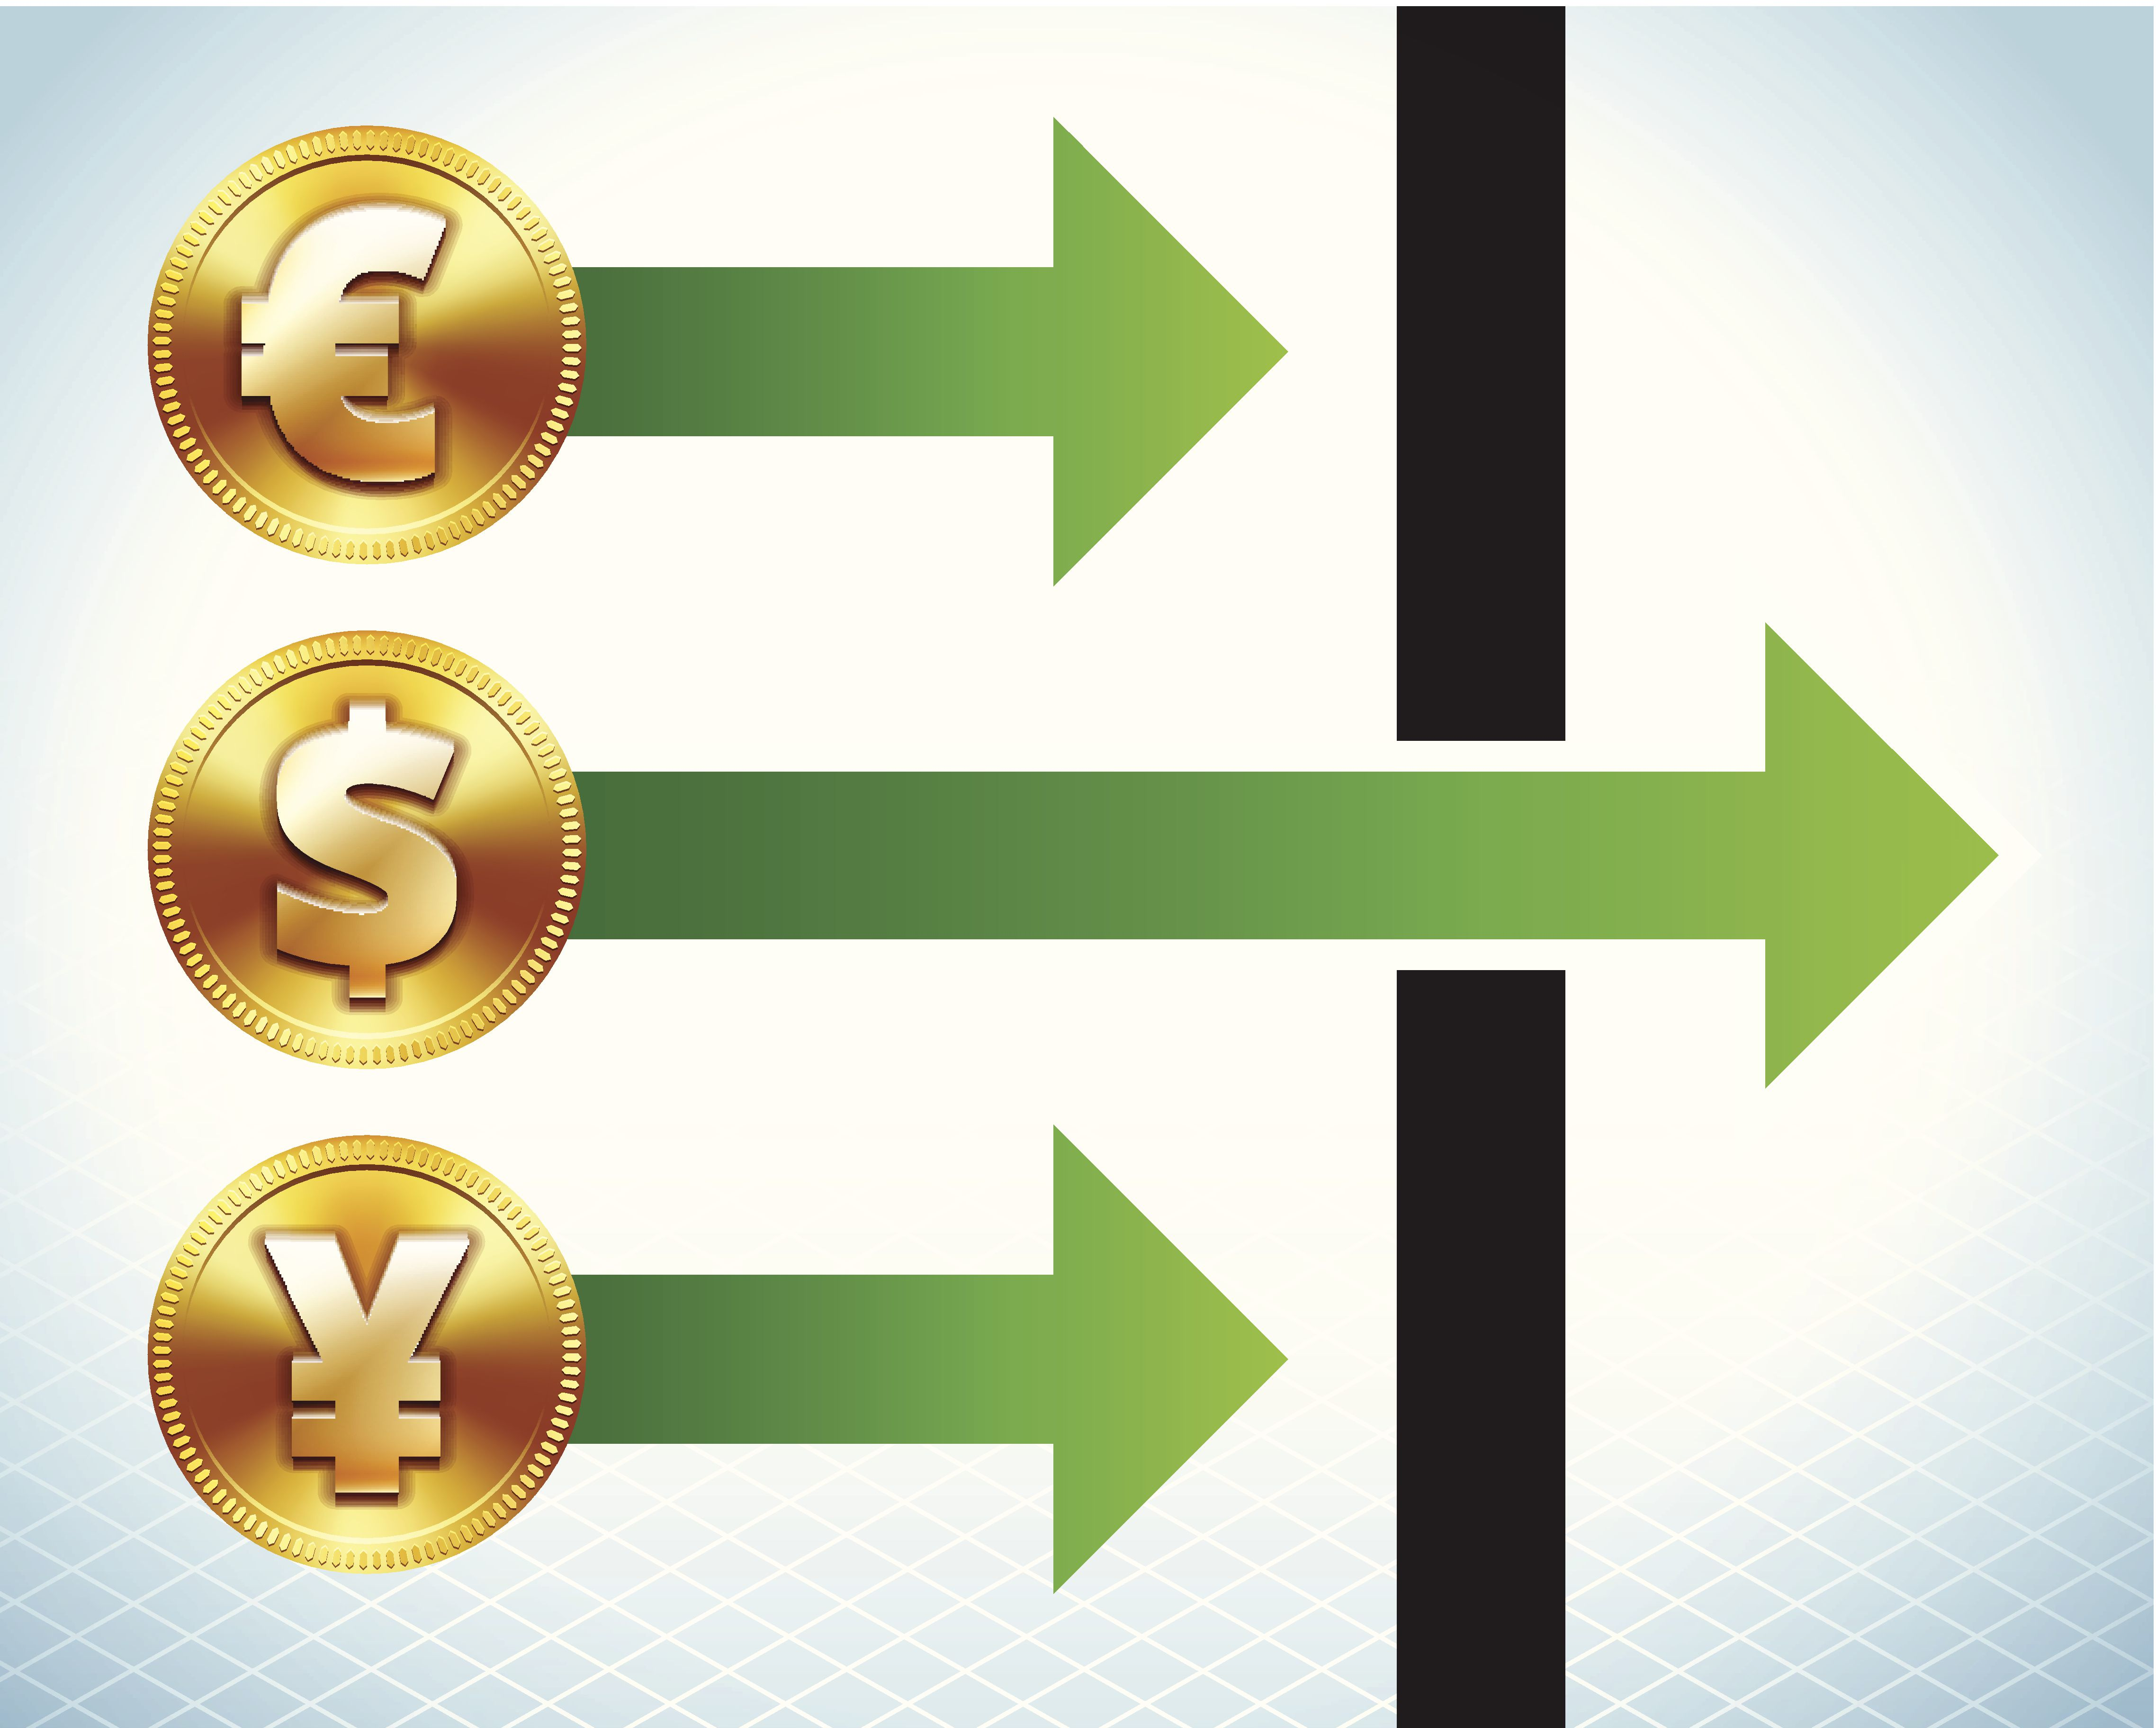 Us dollar definition symbols denominationcurrency 3 reasons why the dollar is so strong right now biocorpaavc